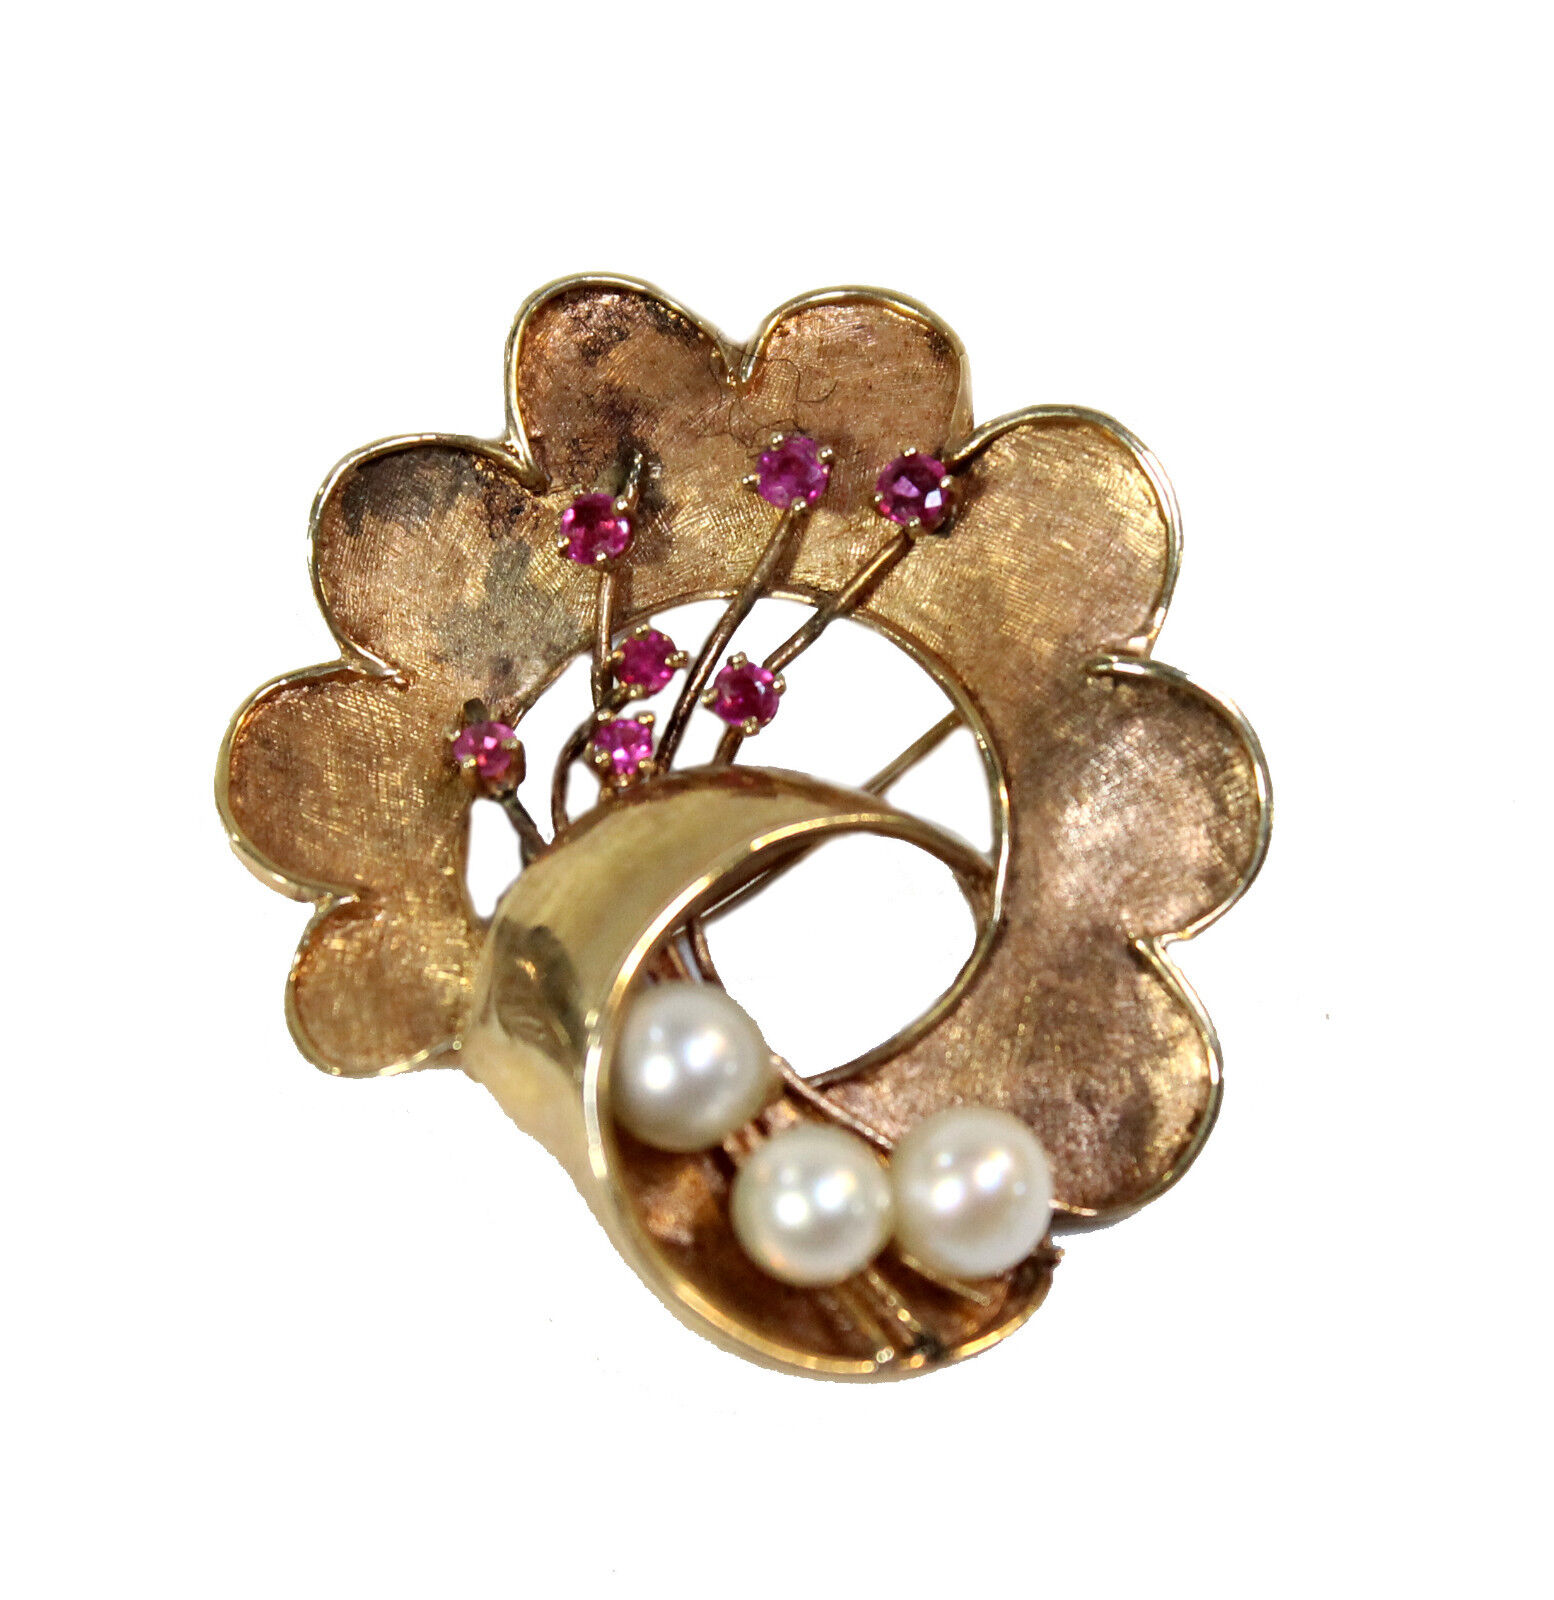 Vintage 14kt Yellow gold Flower Wreath Brooch Cultured Pearls Faceted Rubies Pin